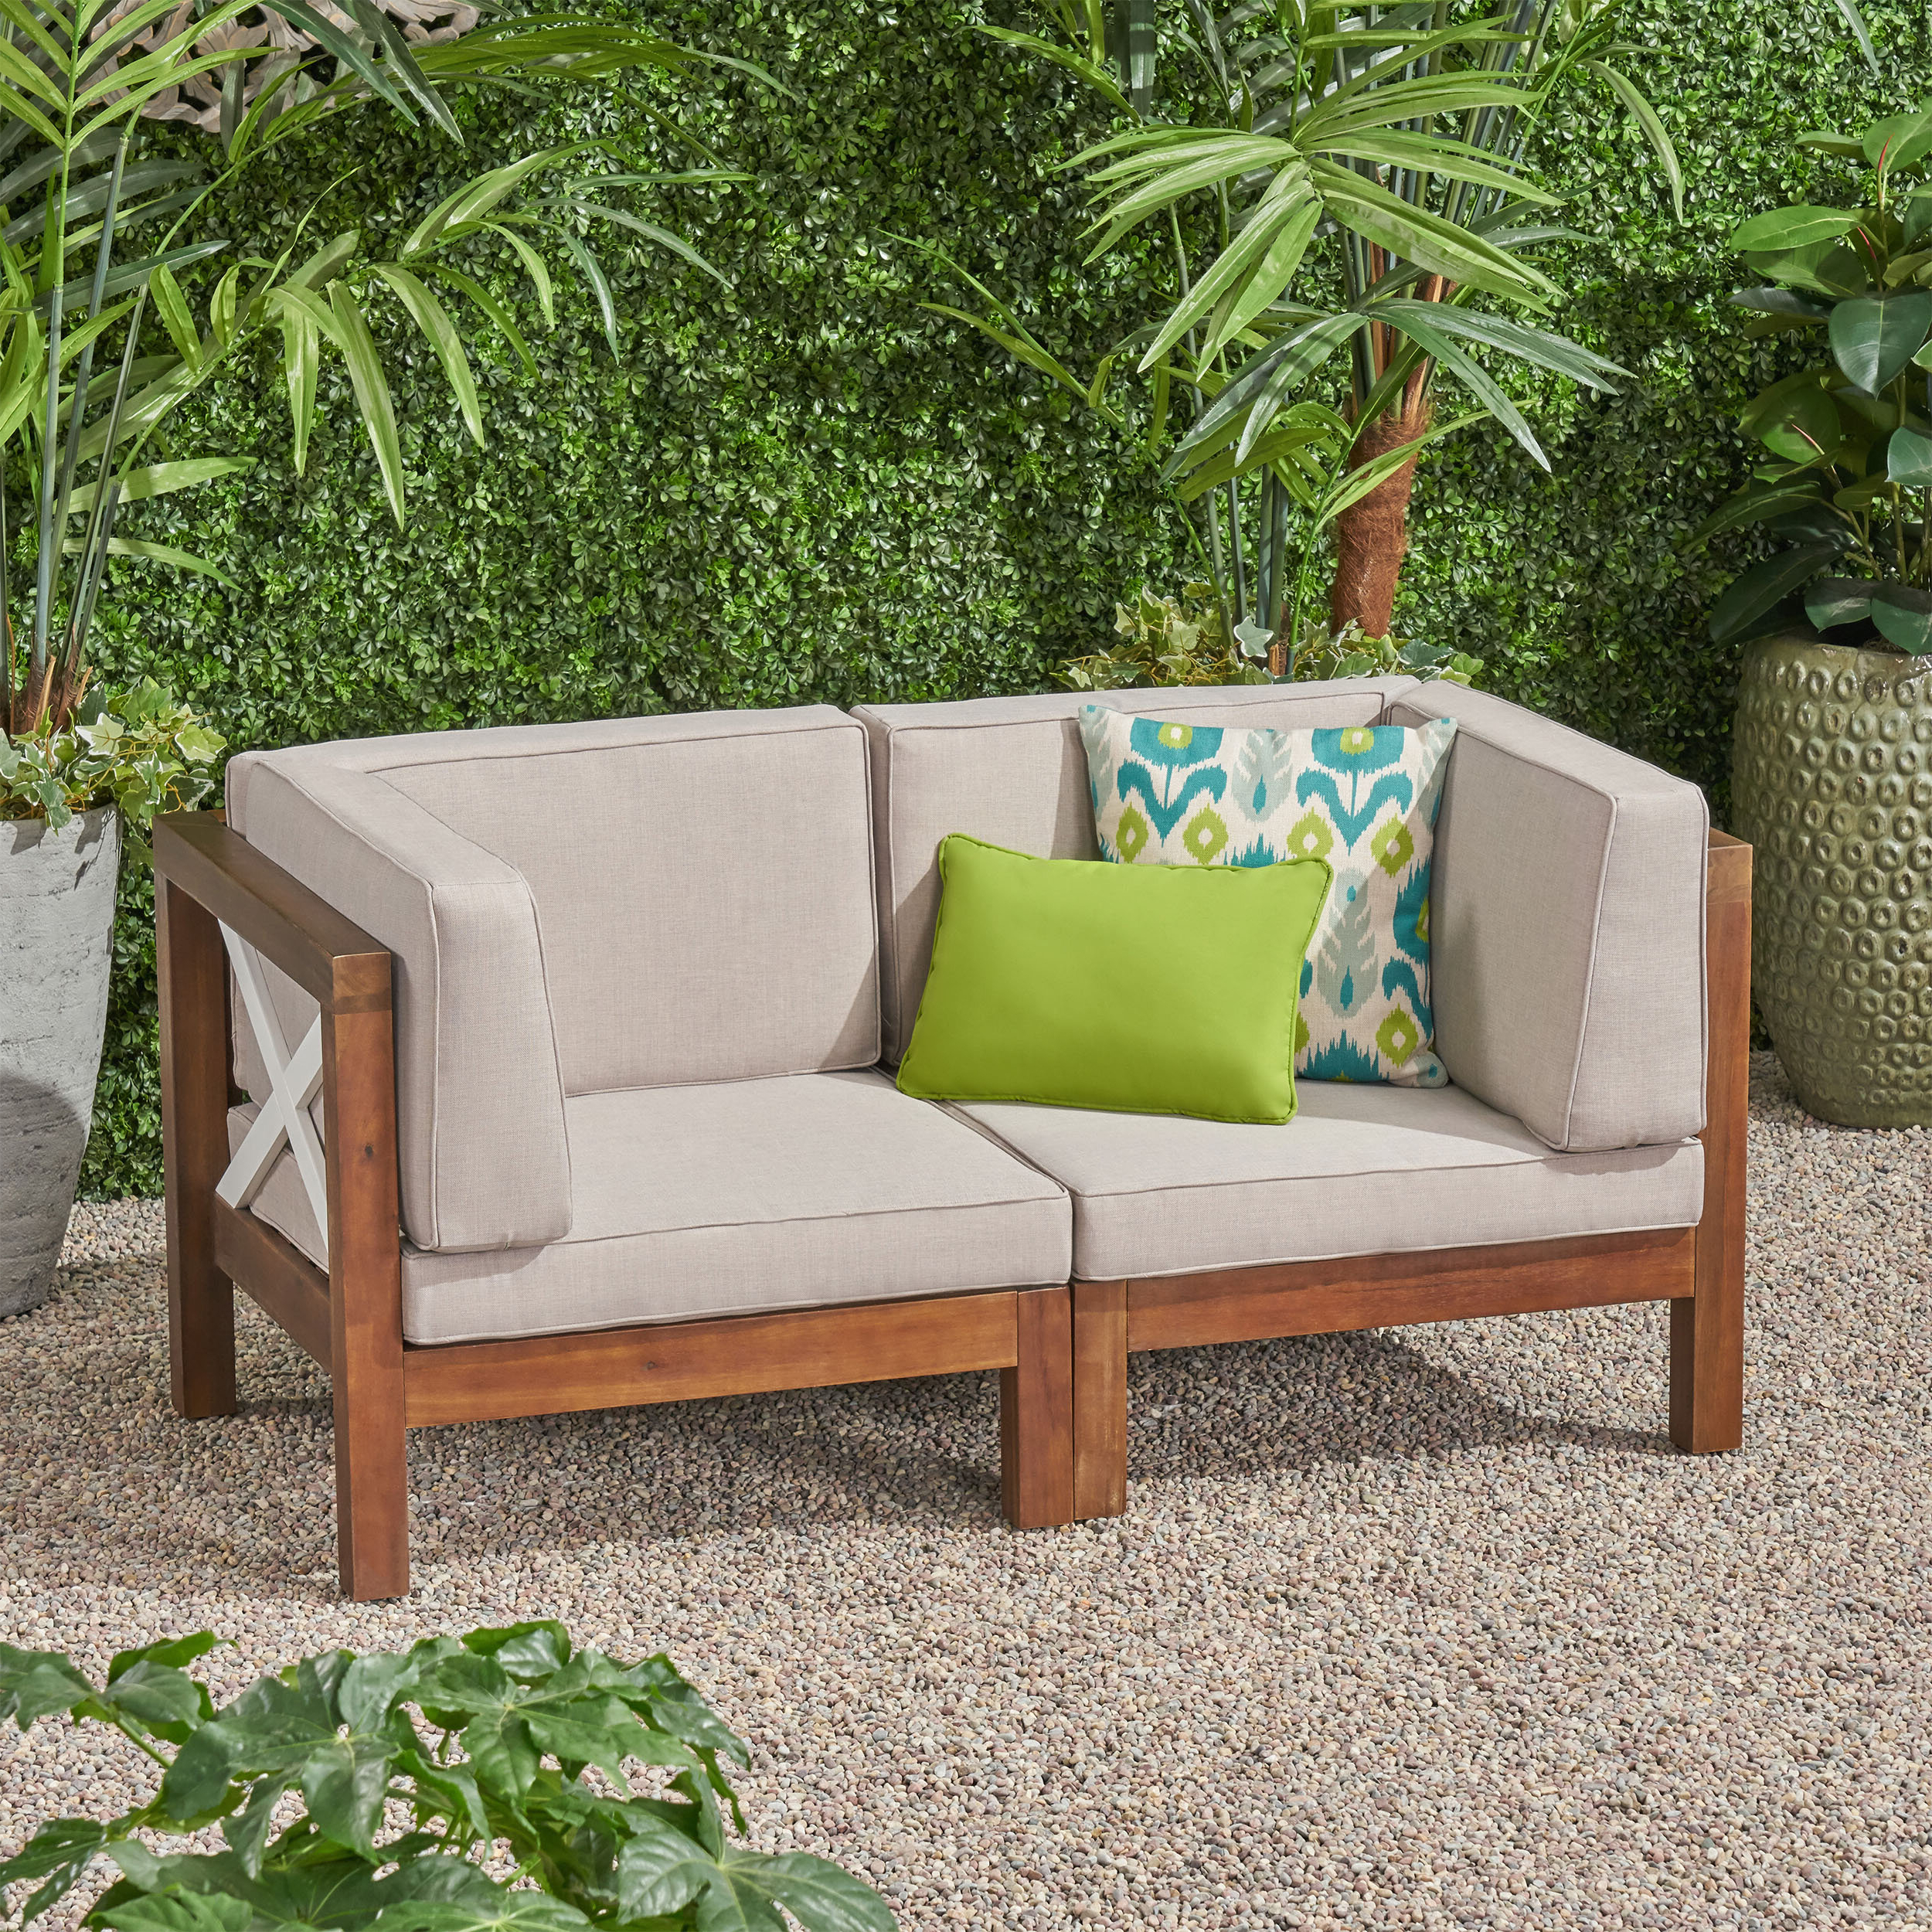 Patel Outdoor Modular Loveseat With Cushions Throughout Newest Menifee Loveseats With Cushions (View 11 of 25)